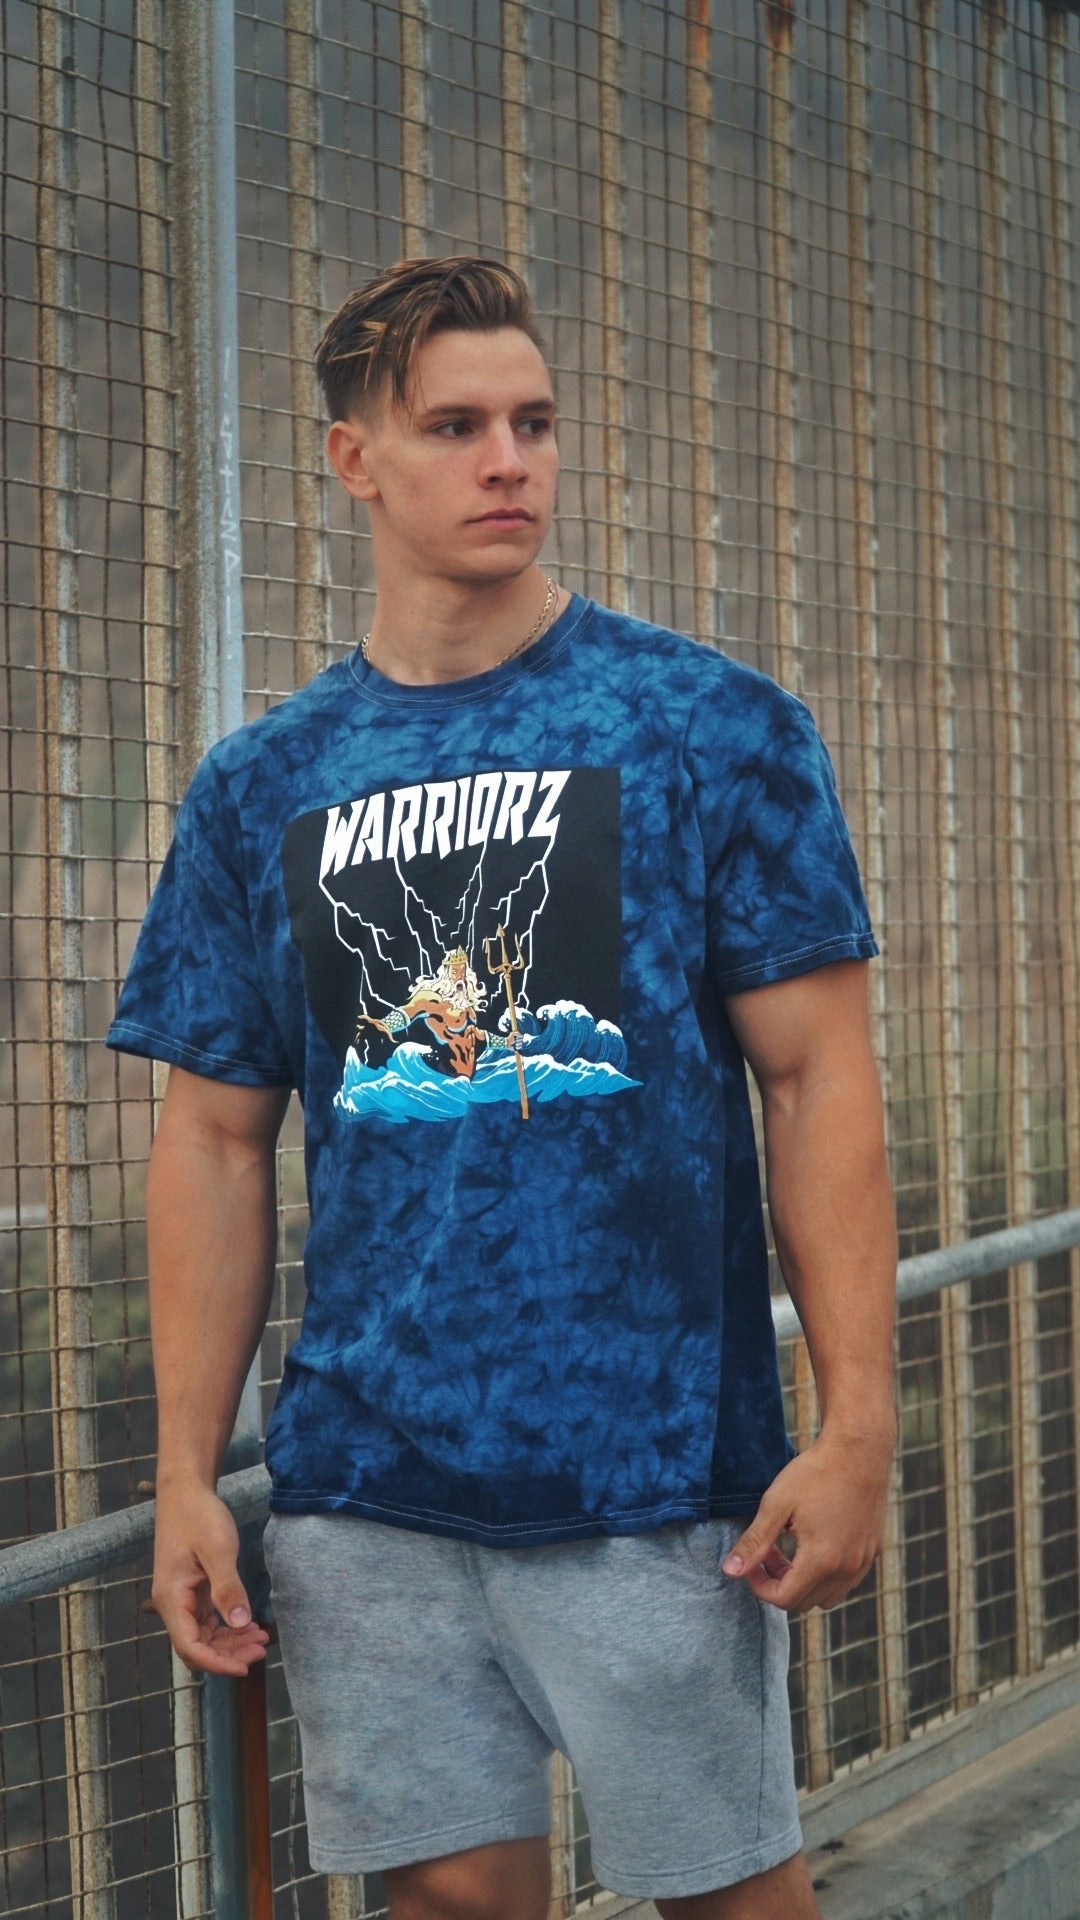 LIMITED EDITION POSEIDON TEE - West Coast Warriorz